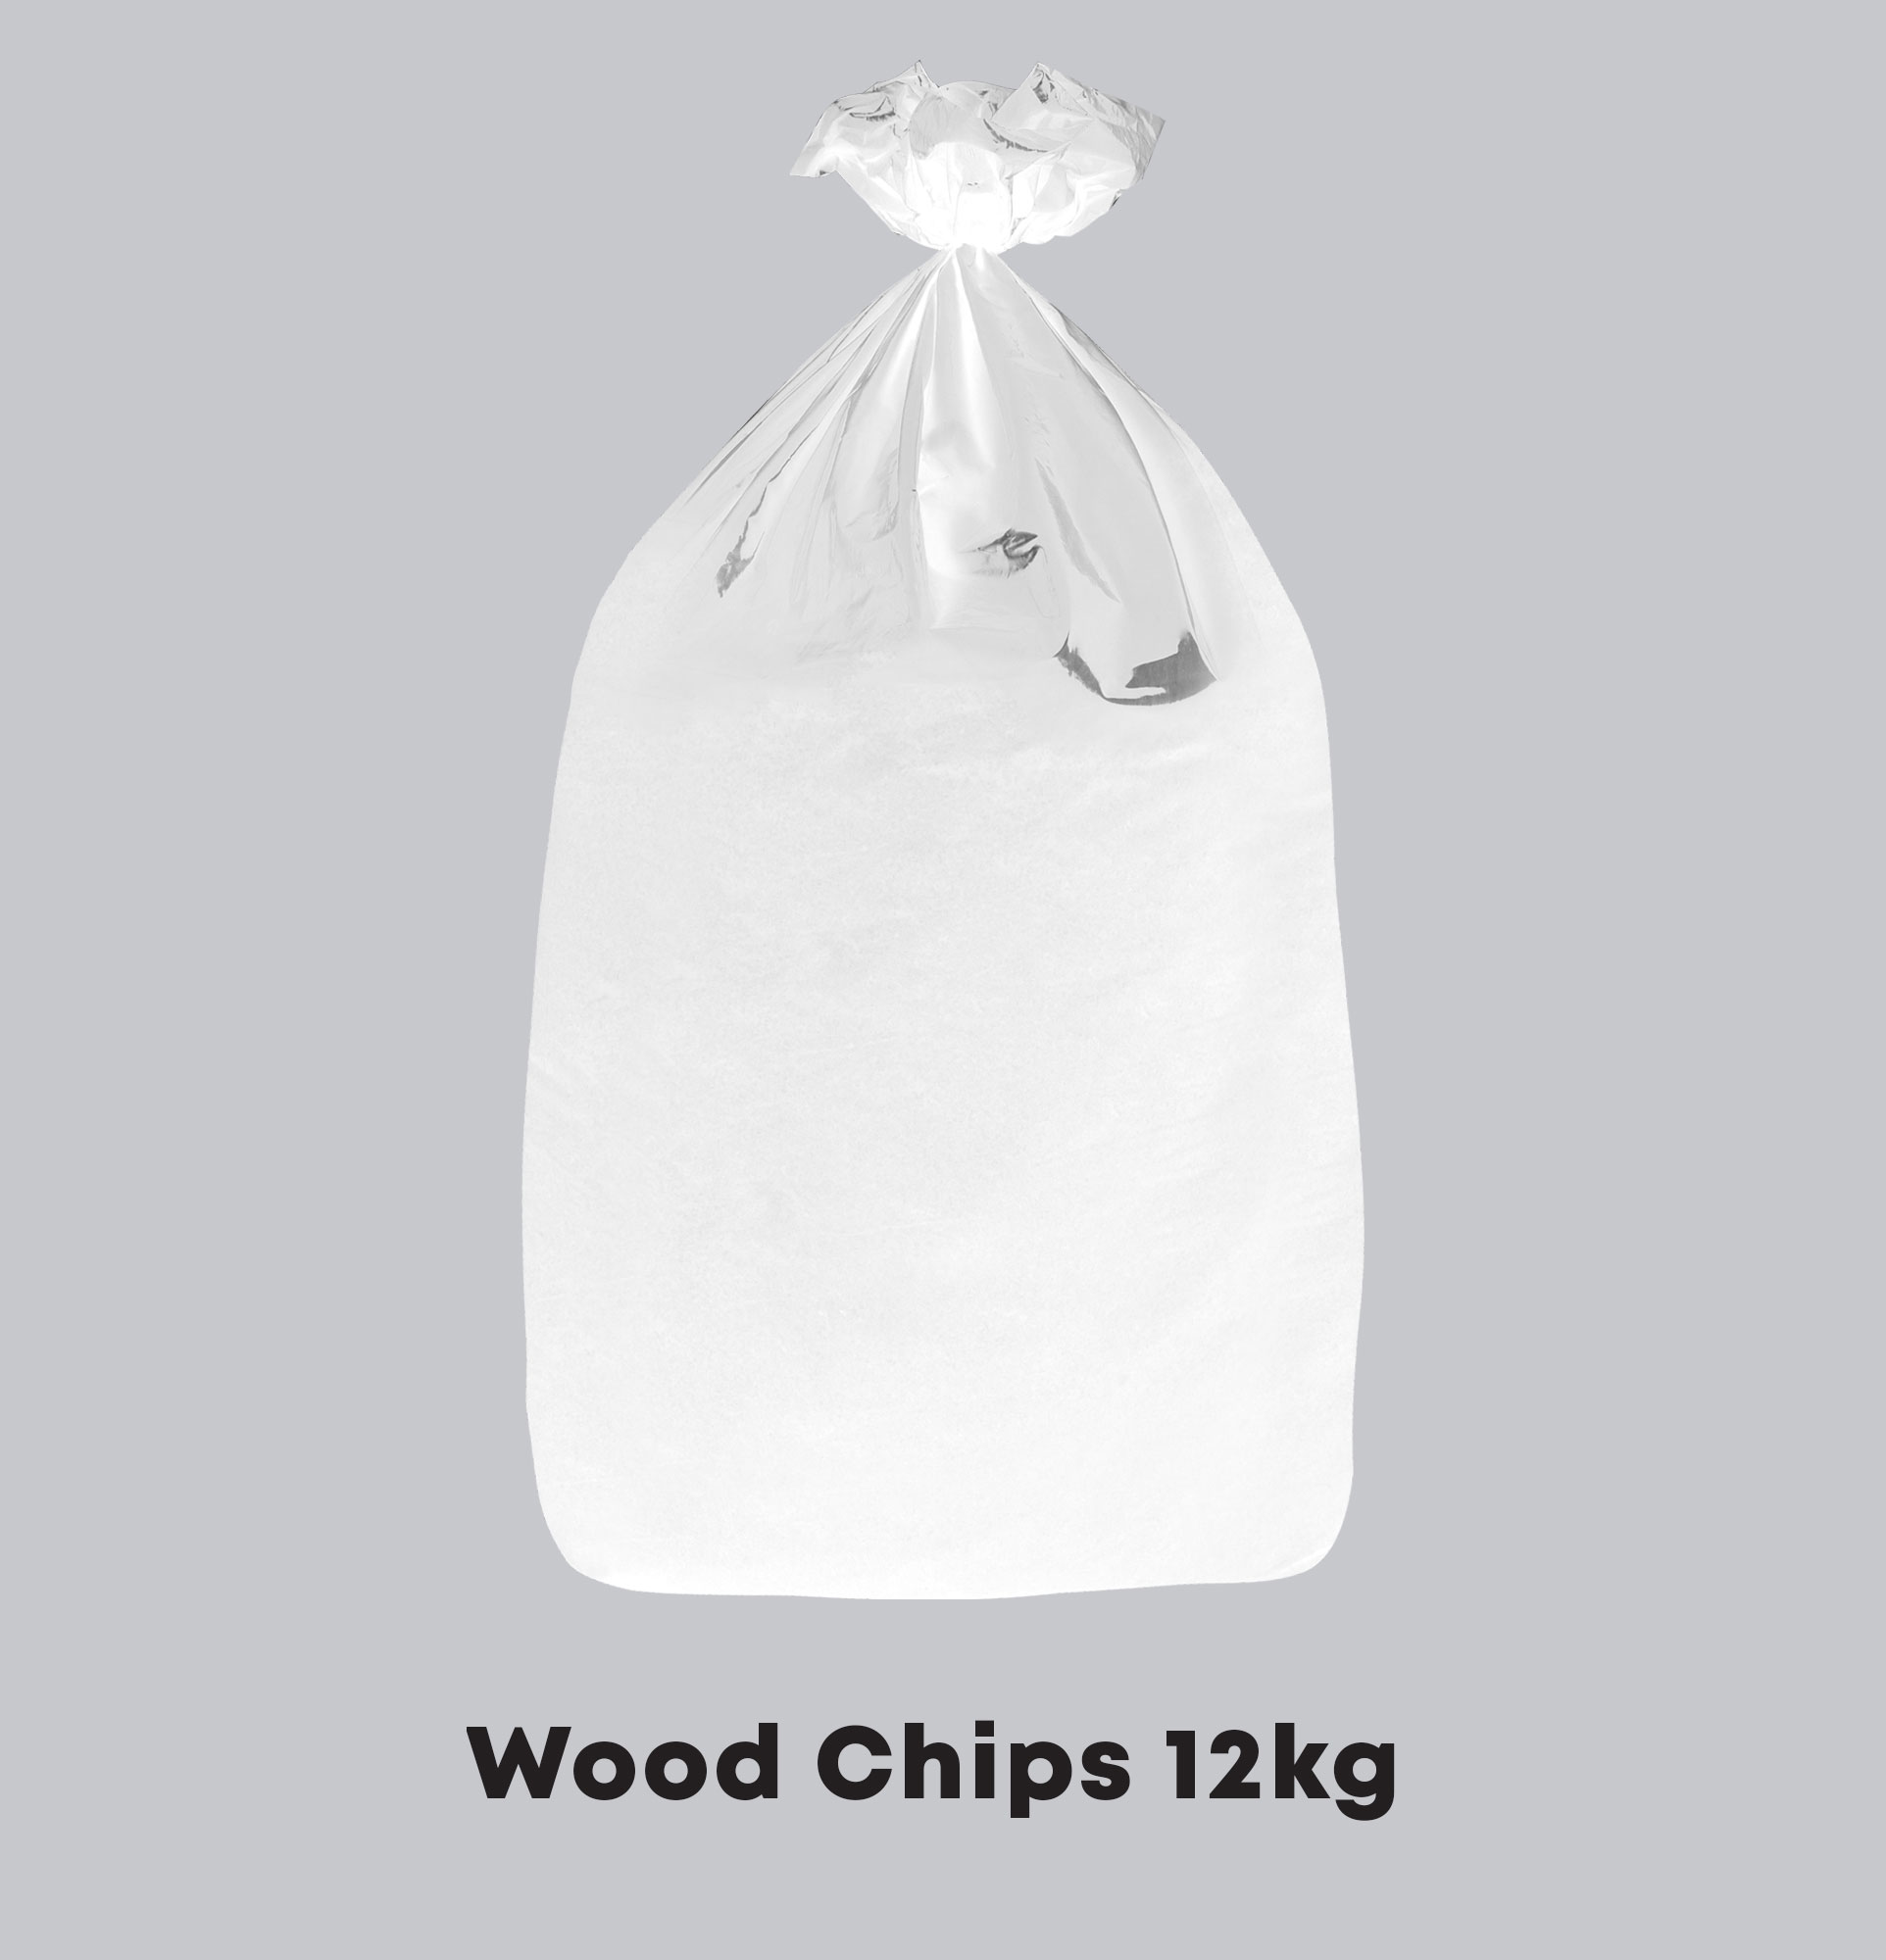 Wood Chips 12KG